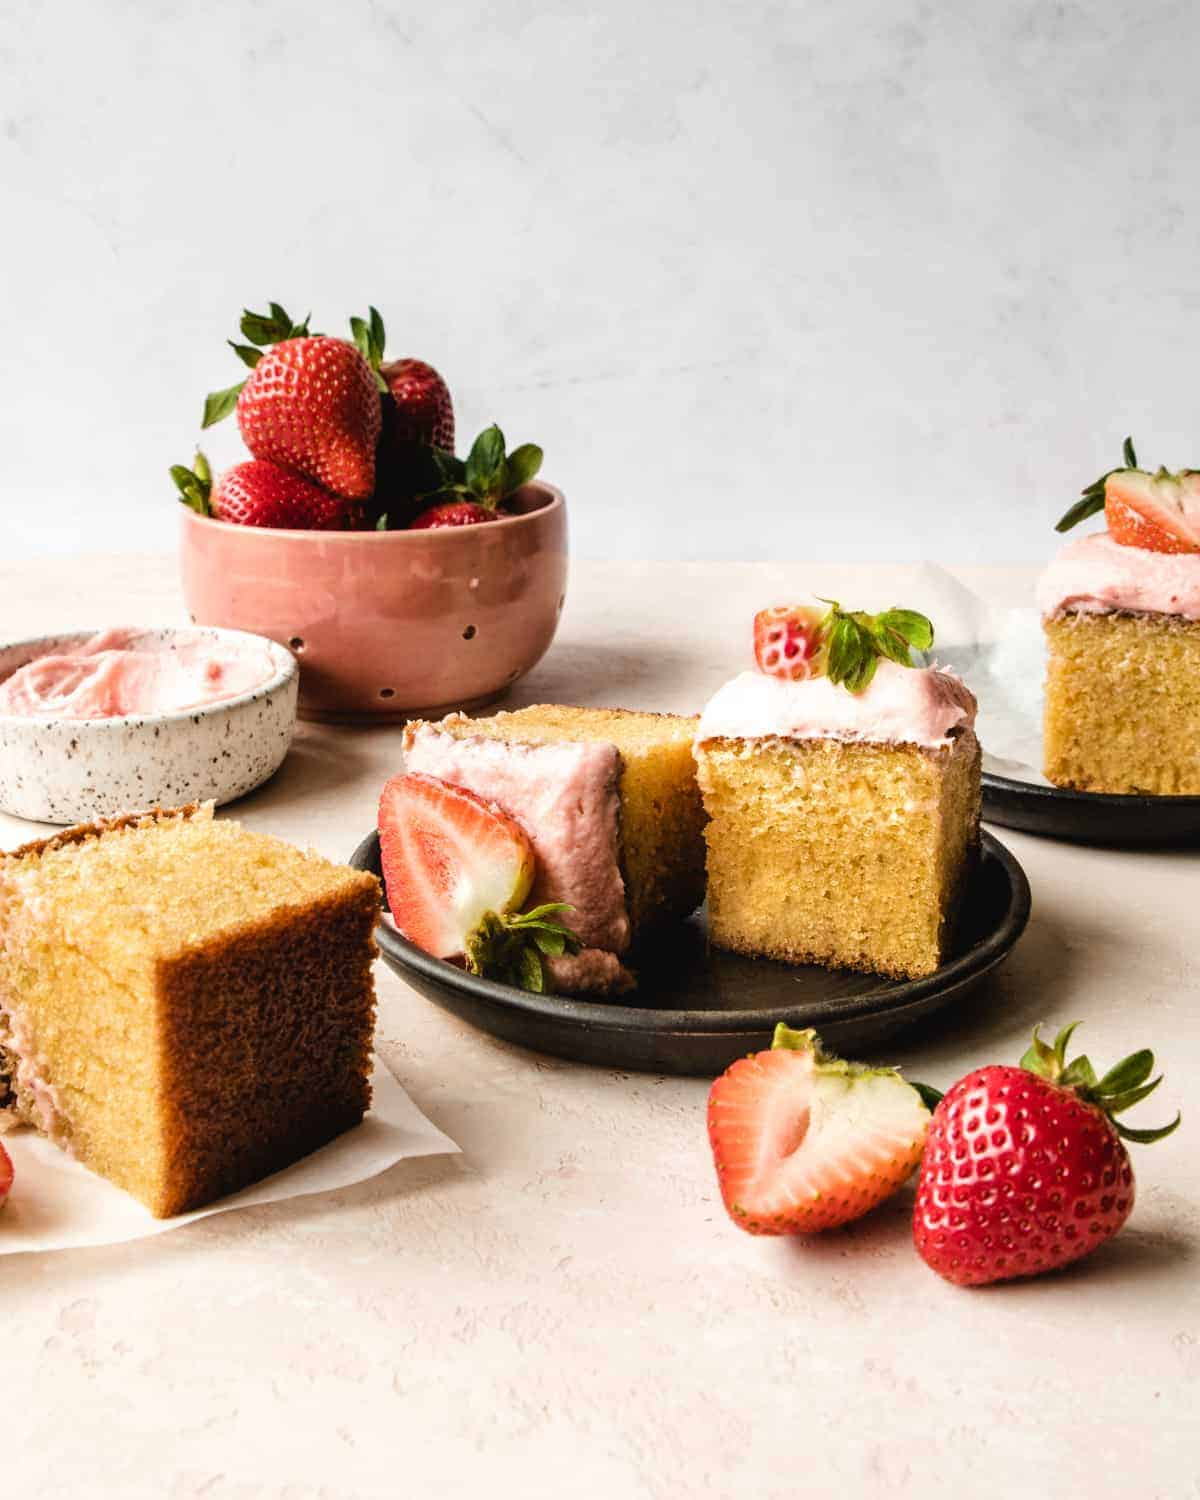 pieces of vanilla cake with strawberry frosting on plat with strawberries